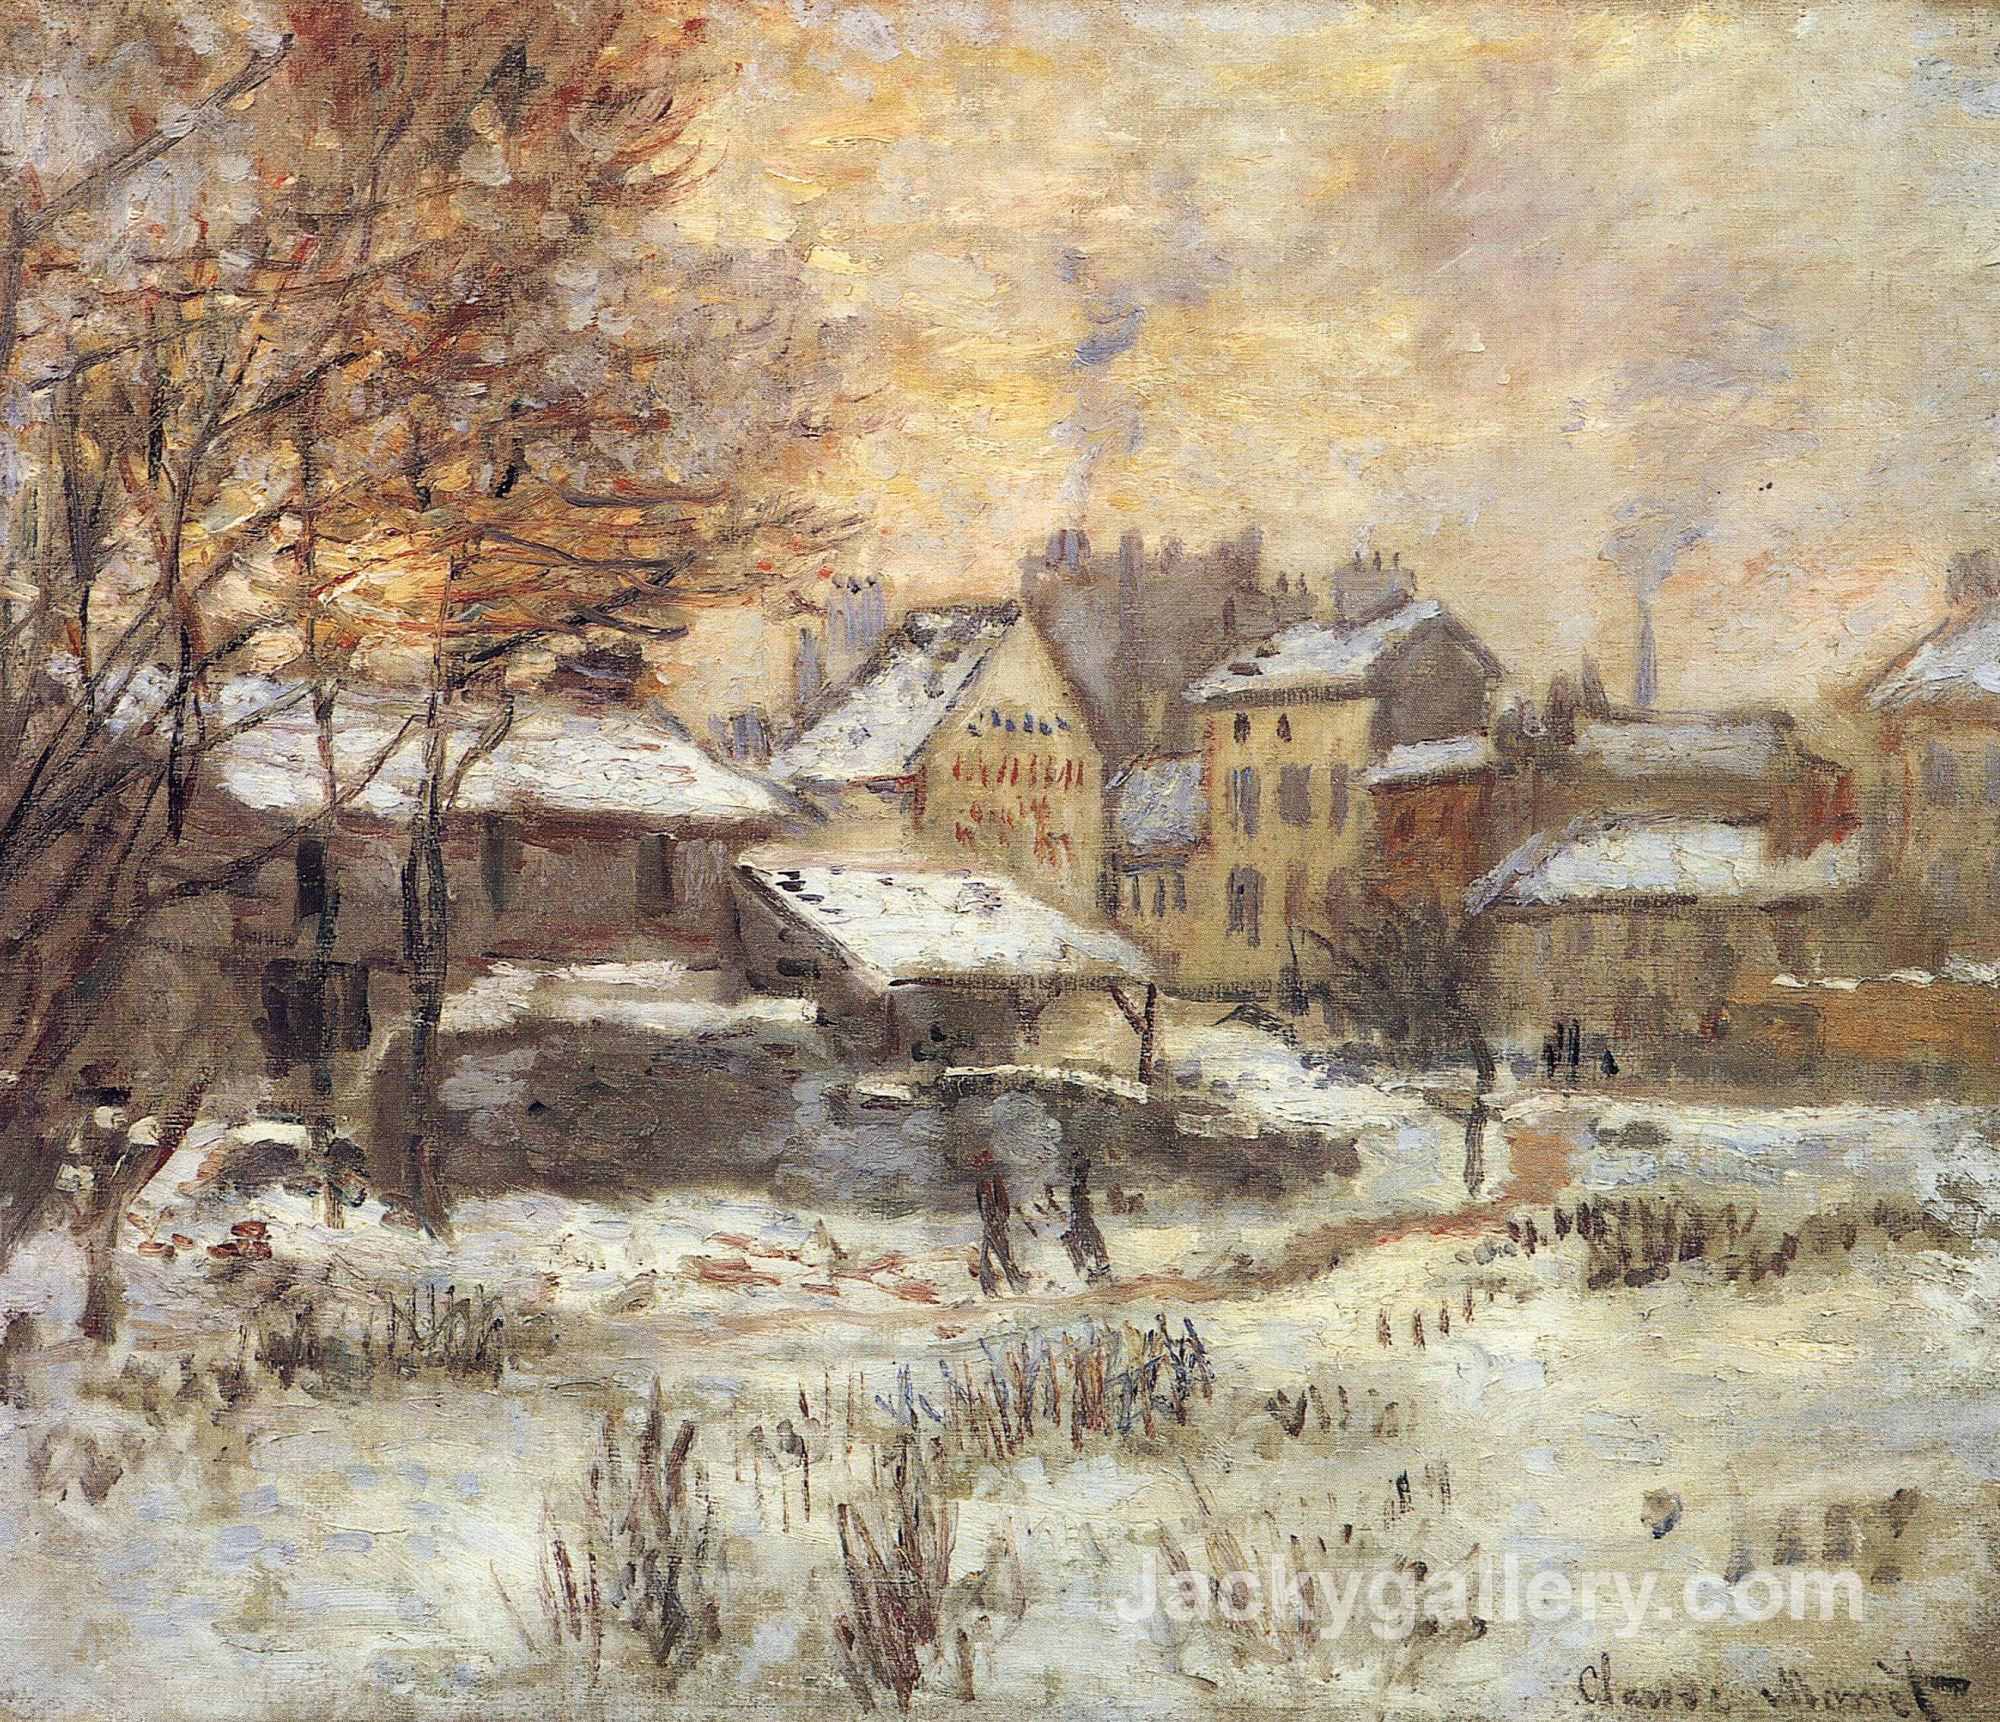 Snow Effect with Setting Sun by Claude Monet paintings reproduction